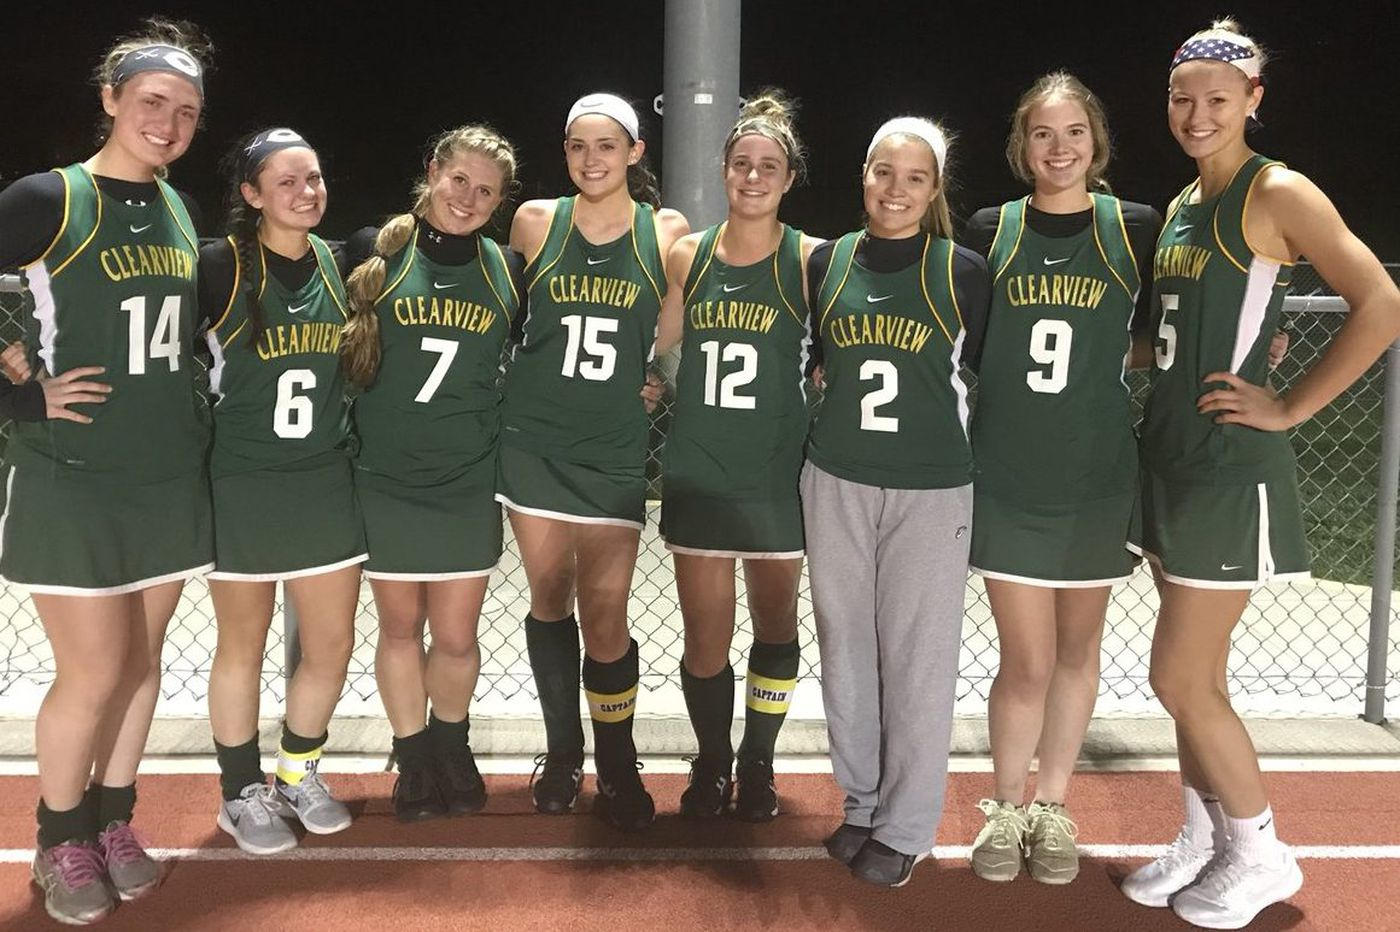 Wednesday's South Jersey roundup: Clearview field hockey falls to Moorestown in Group 3 semifinals